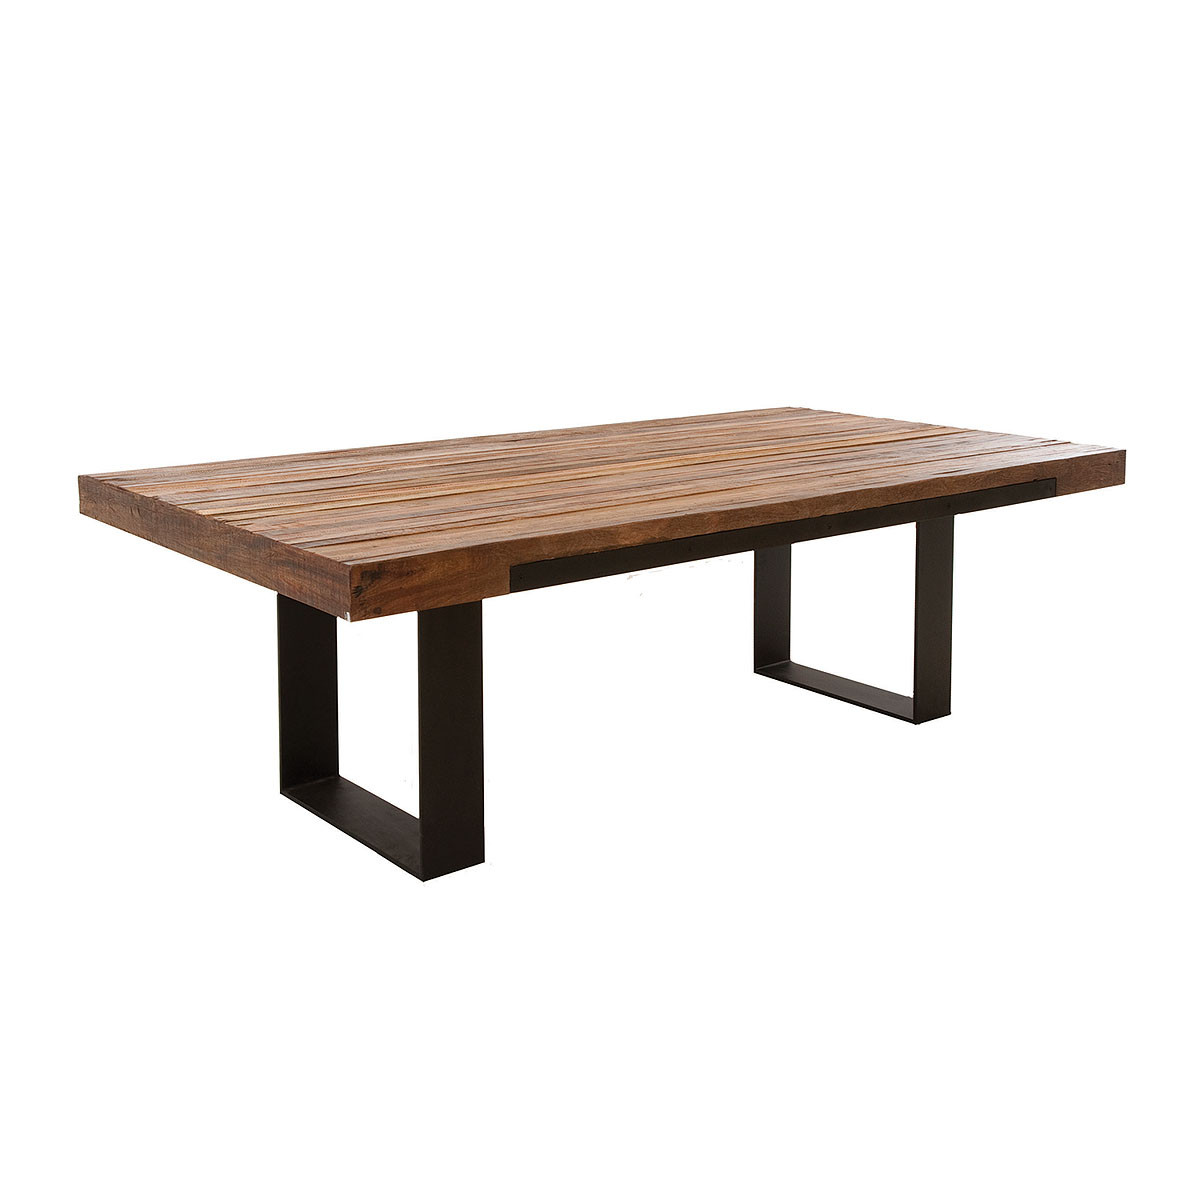 Solid wood beauties are perfect as stand alone dining tables or family ...